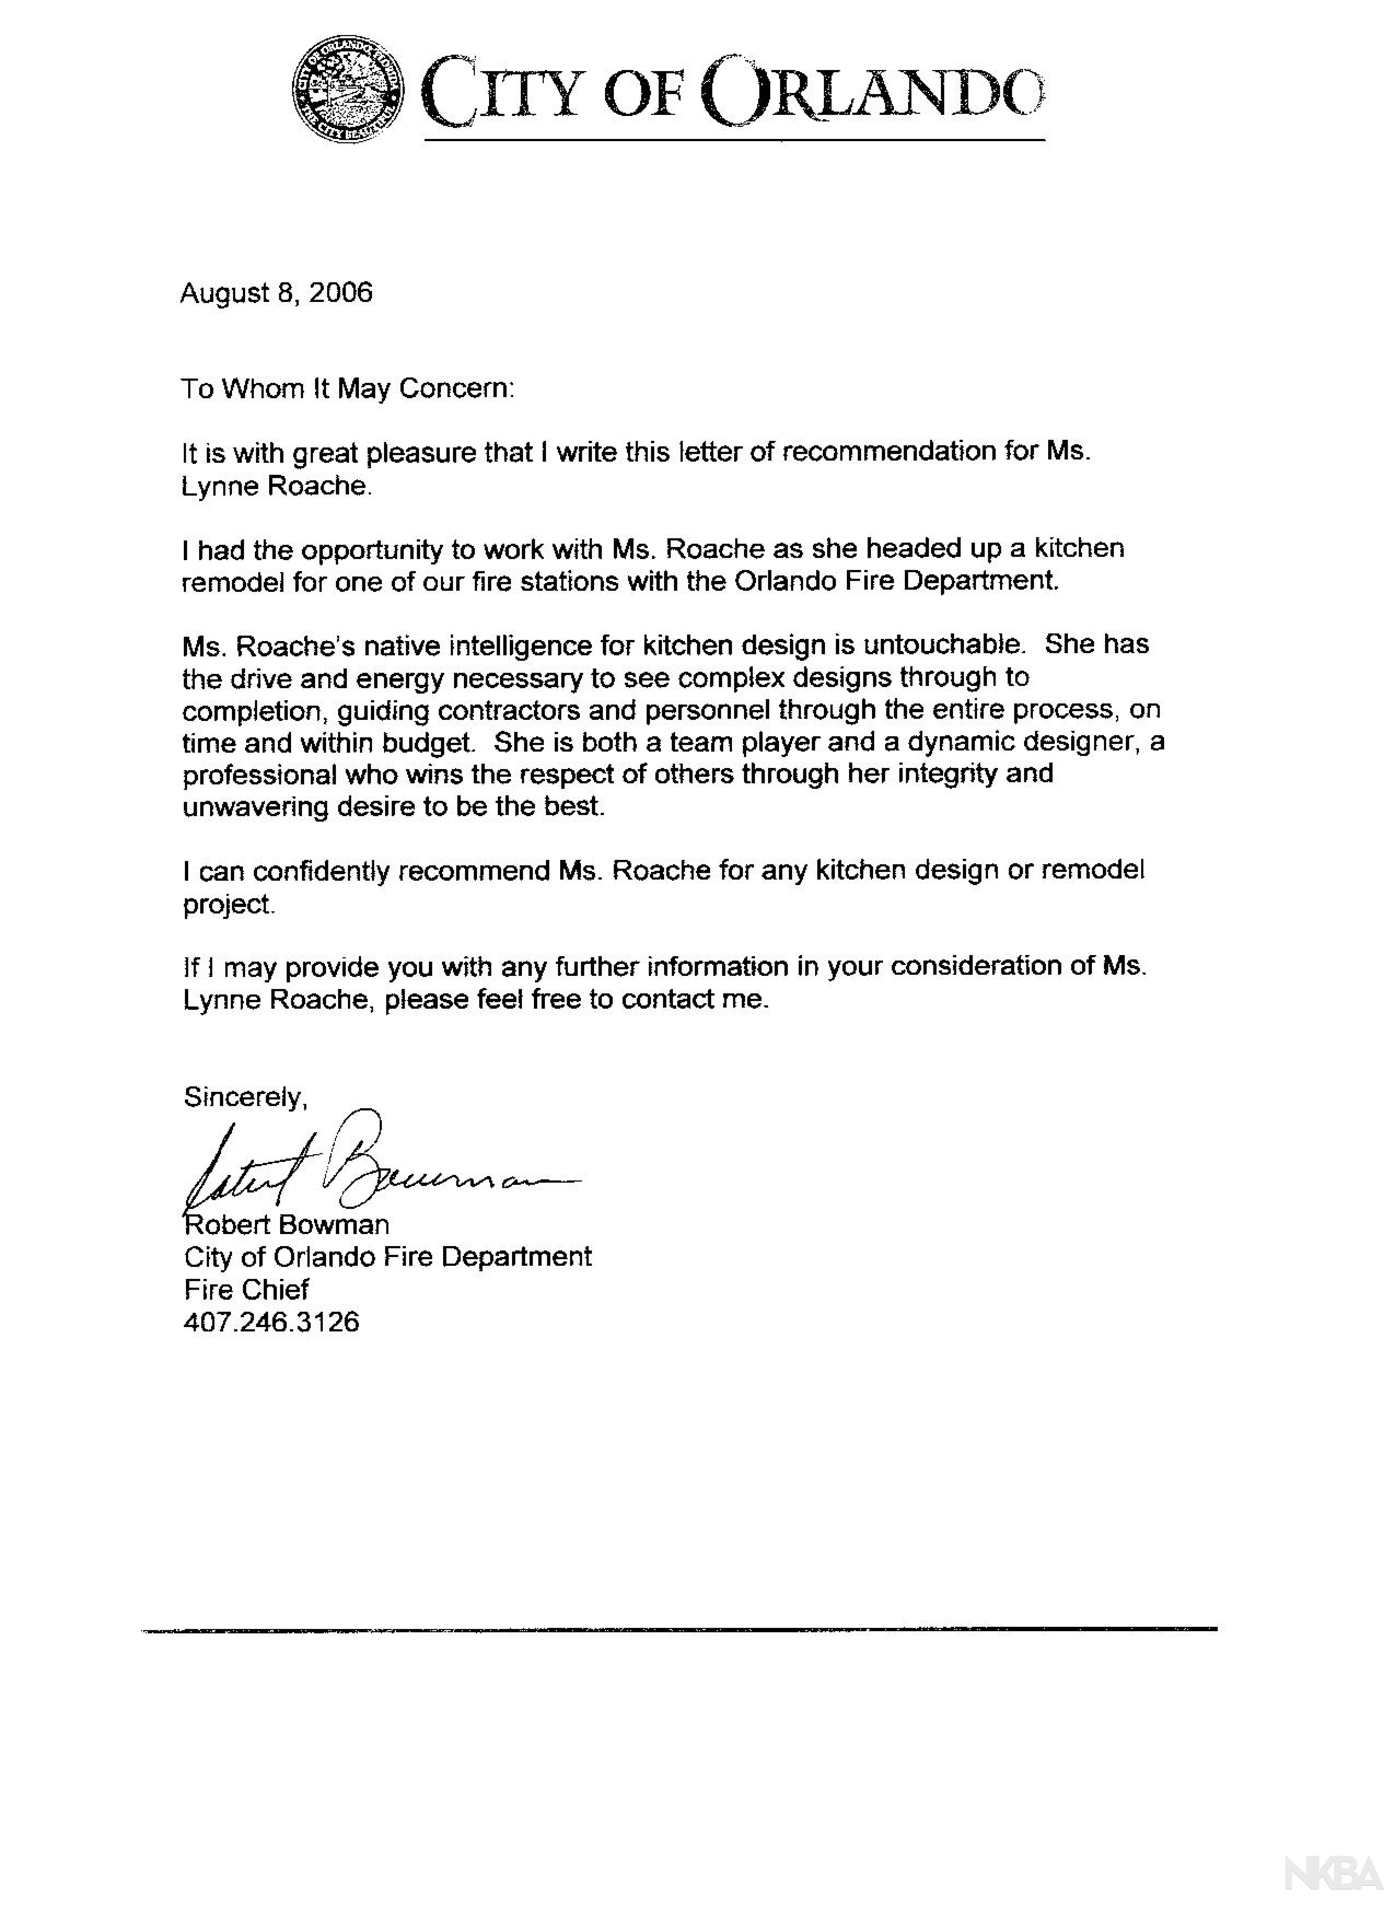 referral letter from orlando fire chief